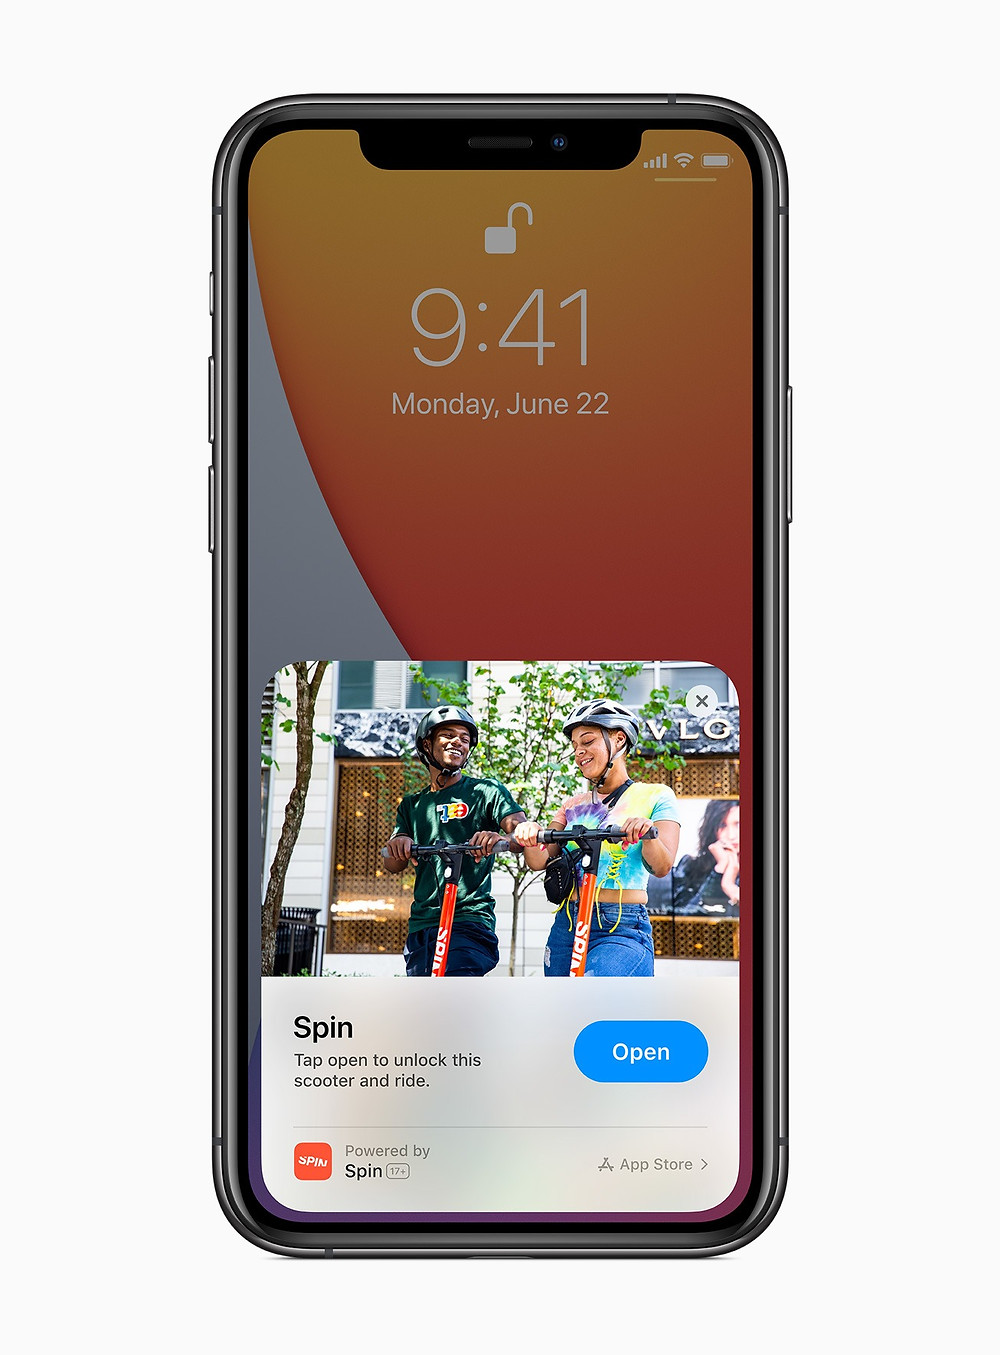 App Clips comes to iPhone with iOS 14 in the fall.